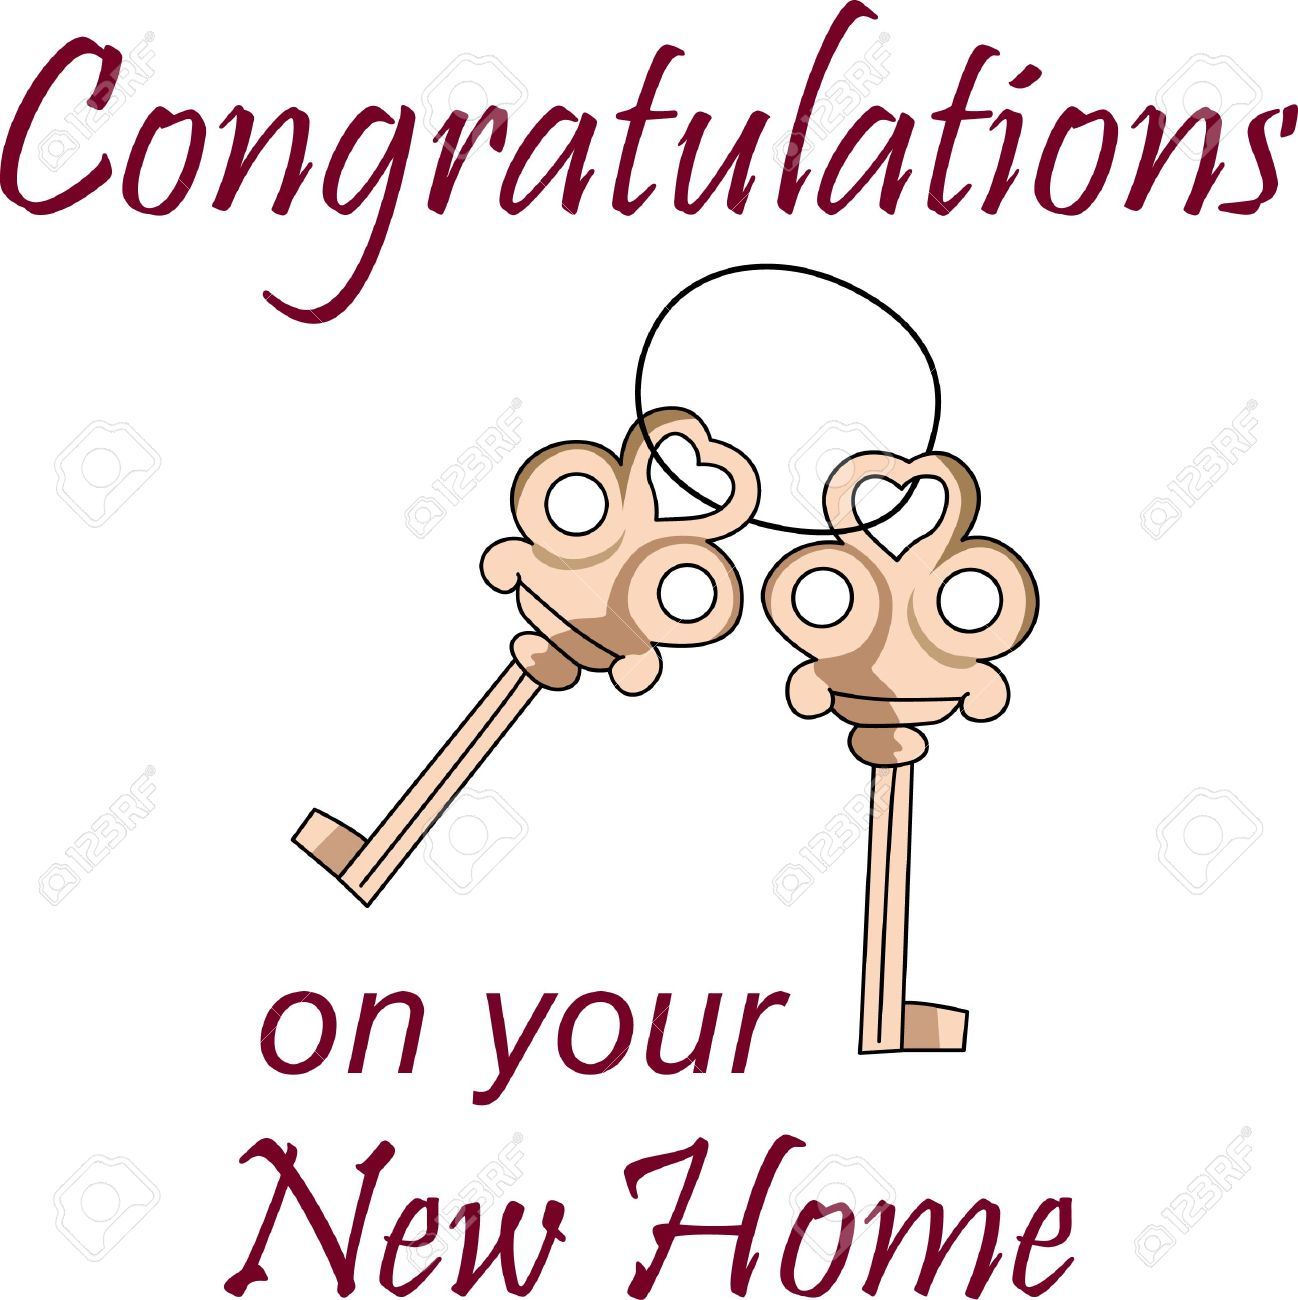 Congratulations On New Home New Home Congratulations Cards New